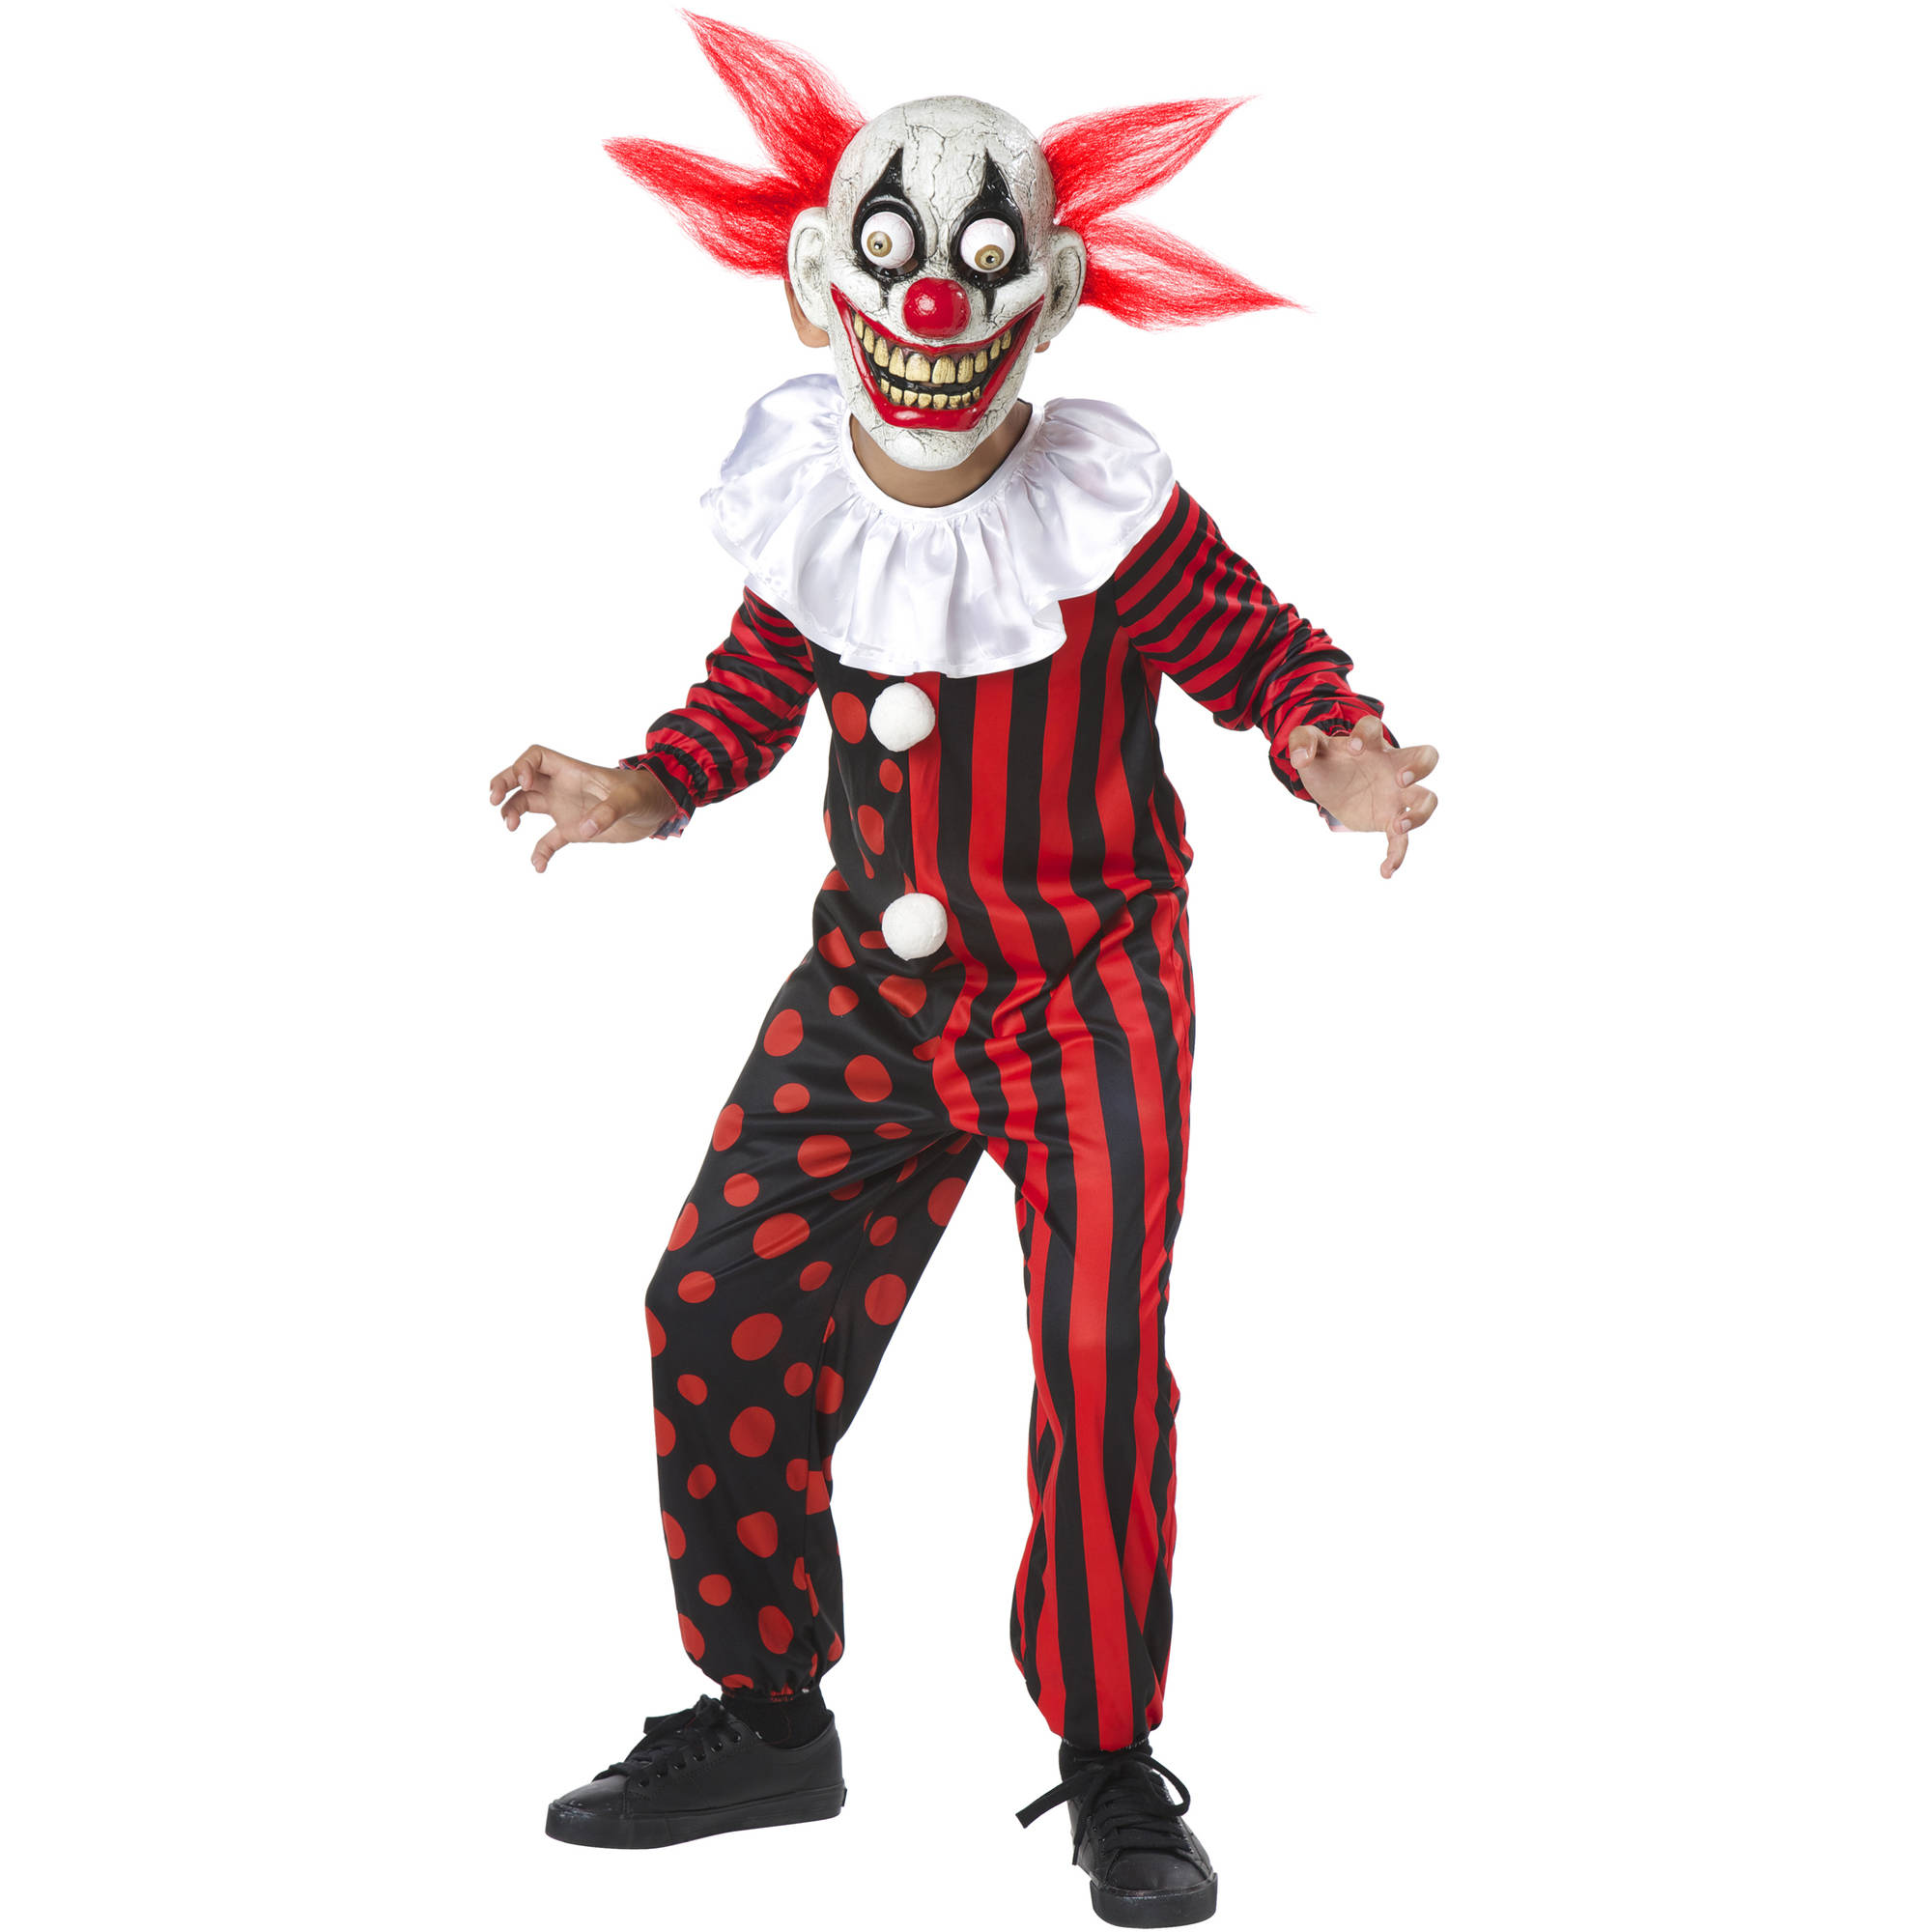 Googley Clown Child Halloween Costume Boys Medium (7-8)